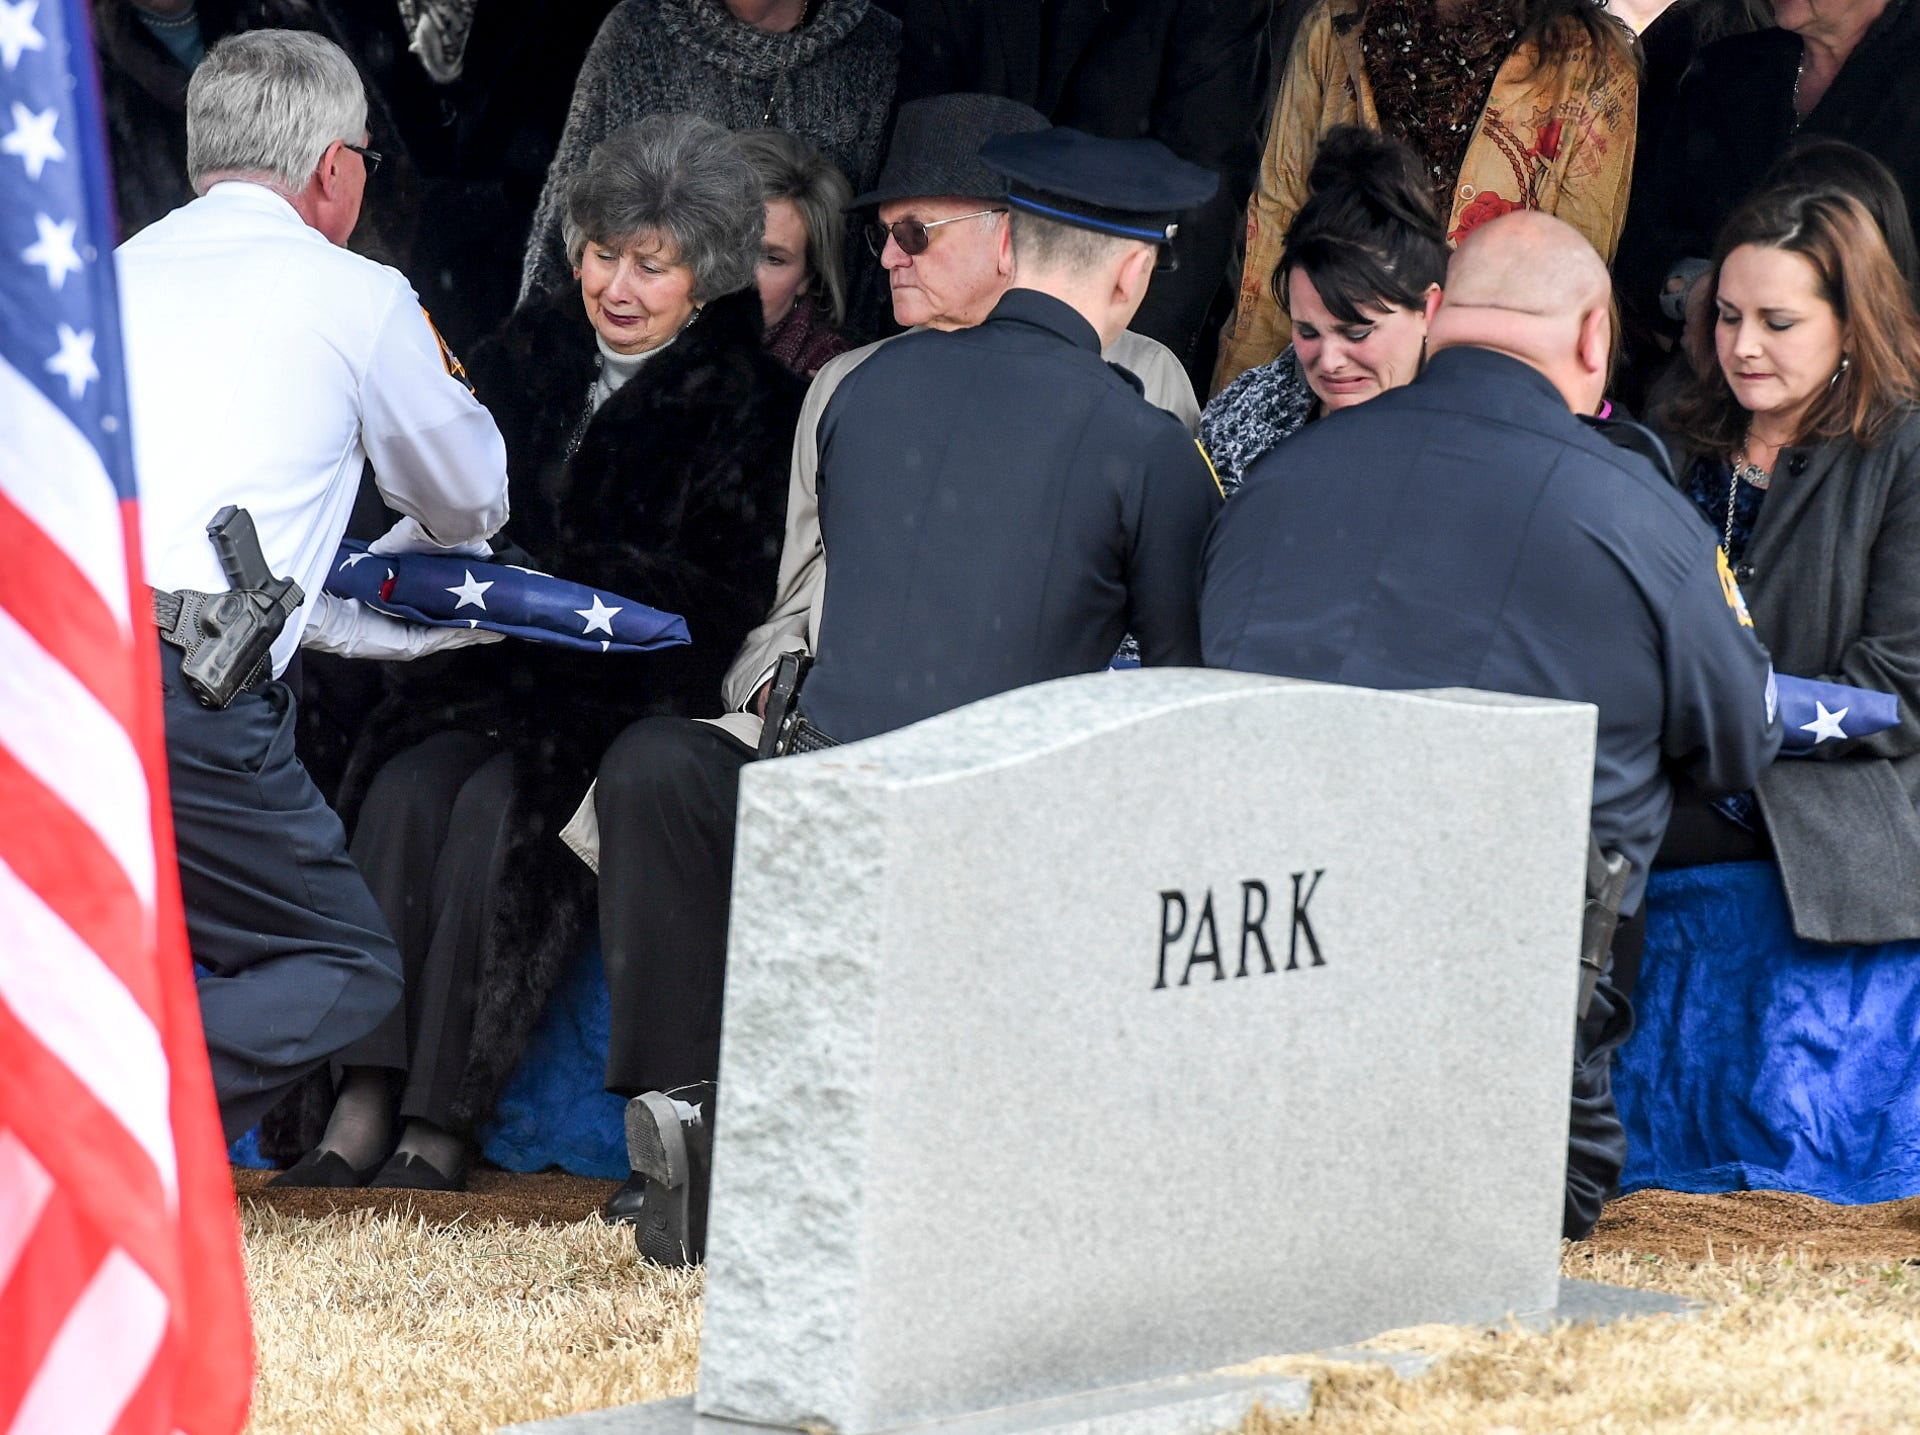 Law Enforcement officers hand folded American Flags to the mother and daughters, Becky, Elizabeth, and Phyllis, of Assistant Alamo Police Chief Phillip Harold Park at his burial service, Friday, Jan. 11, 2019.